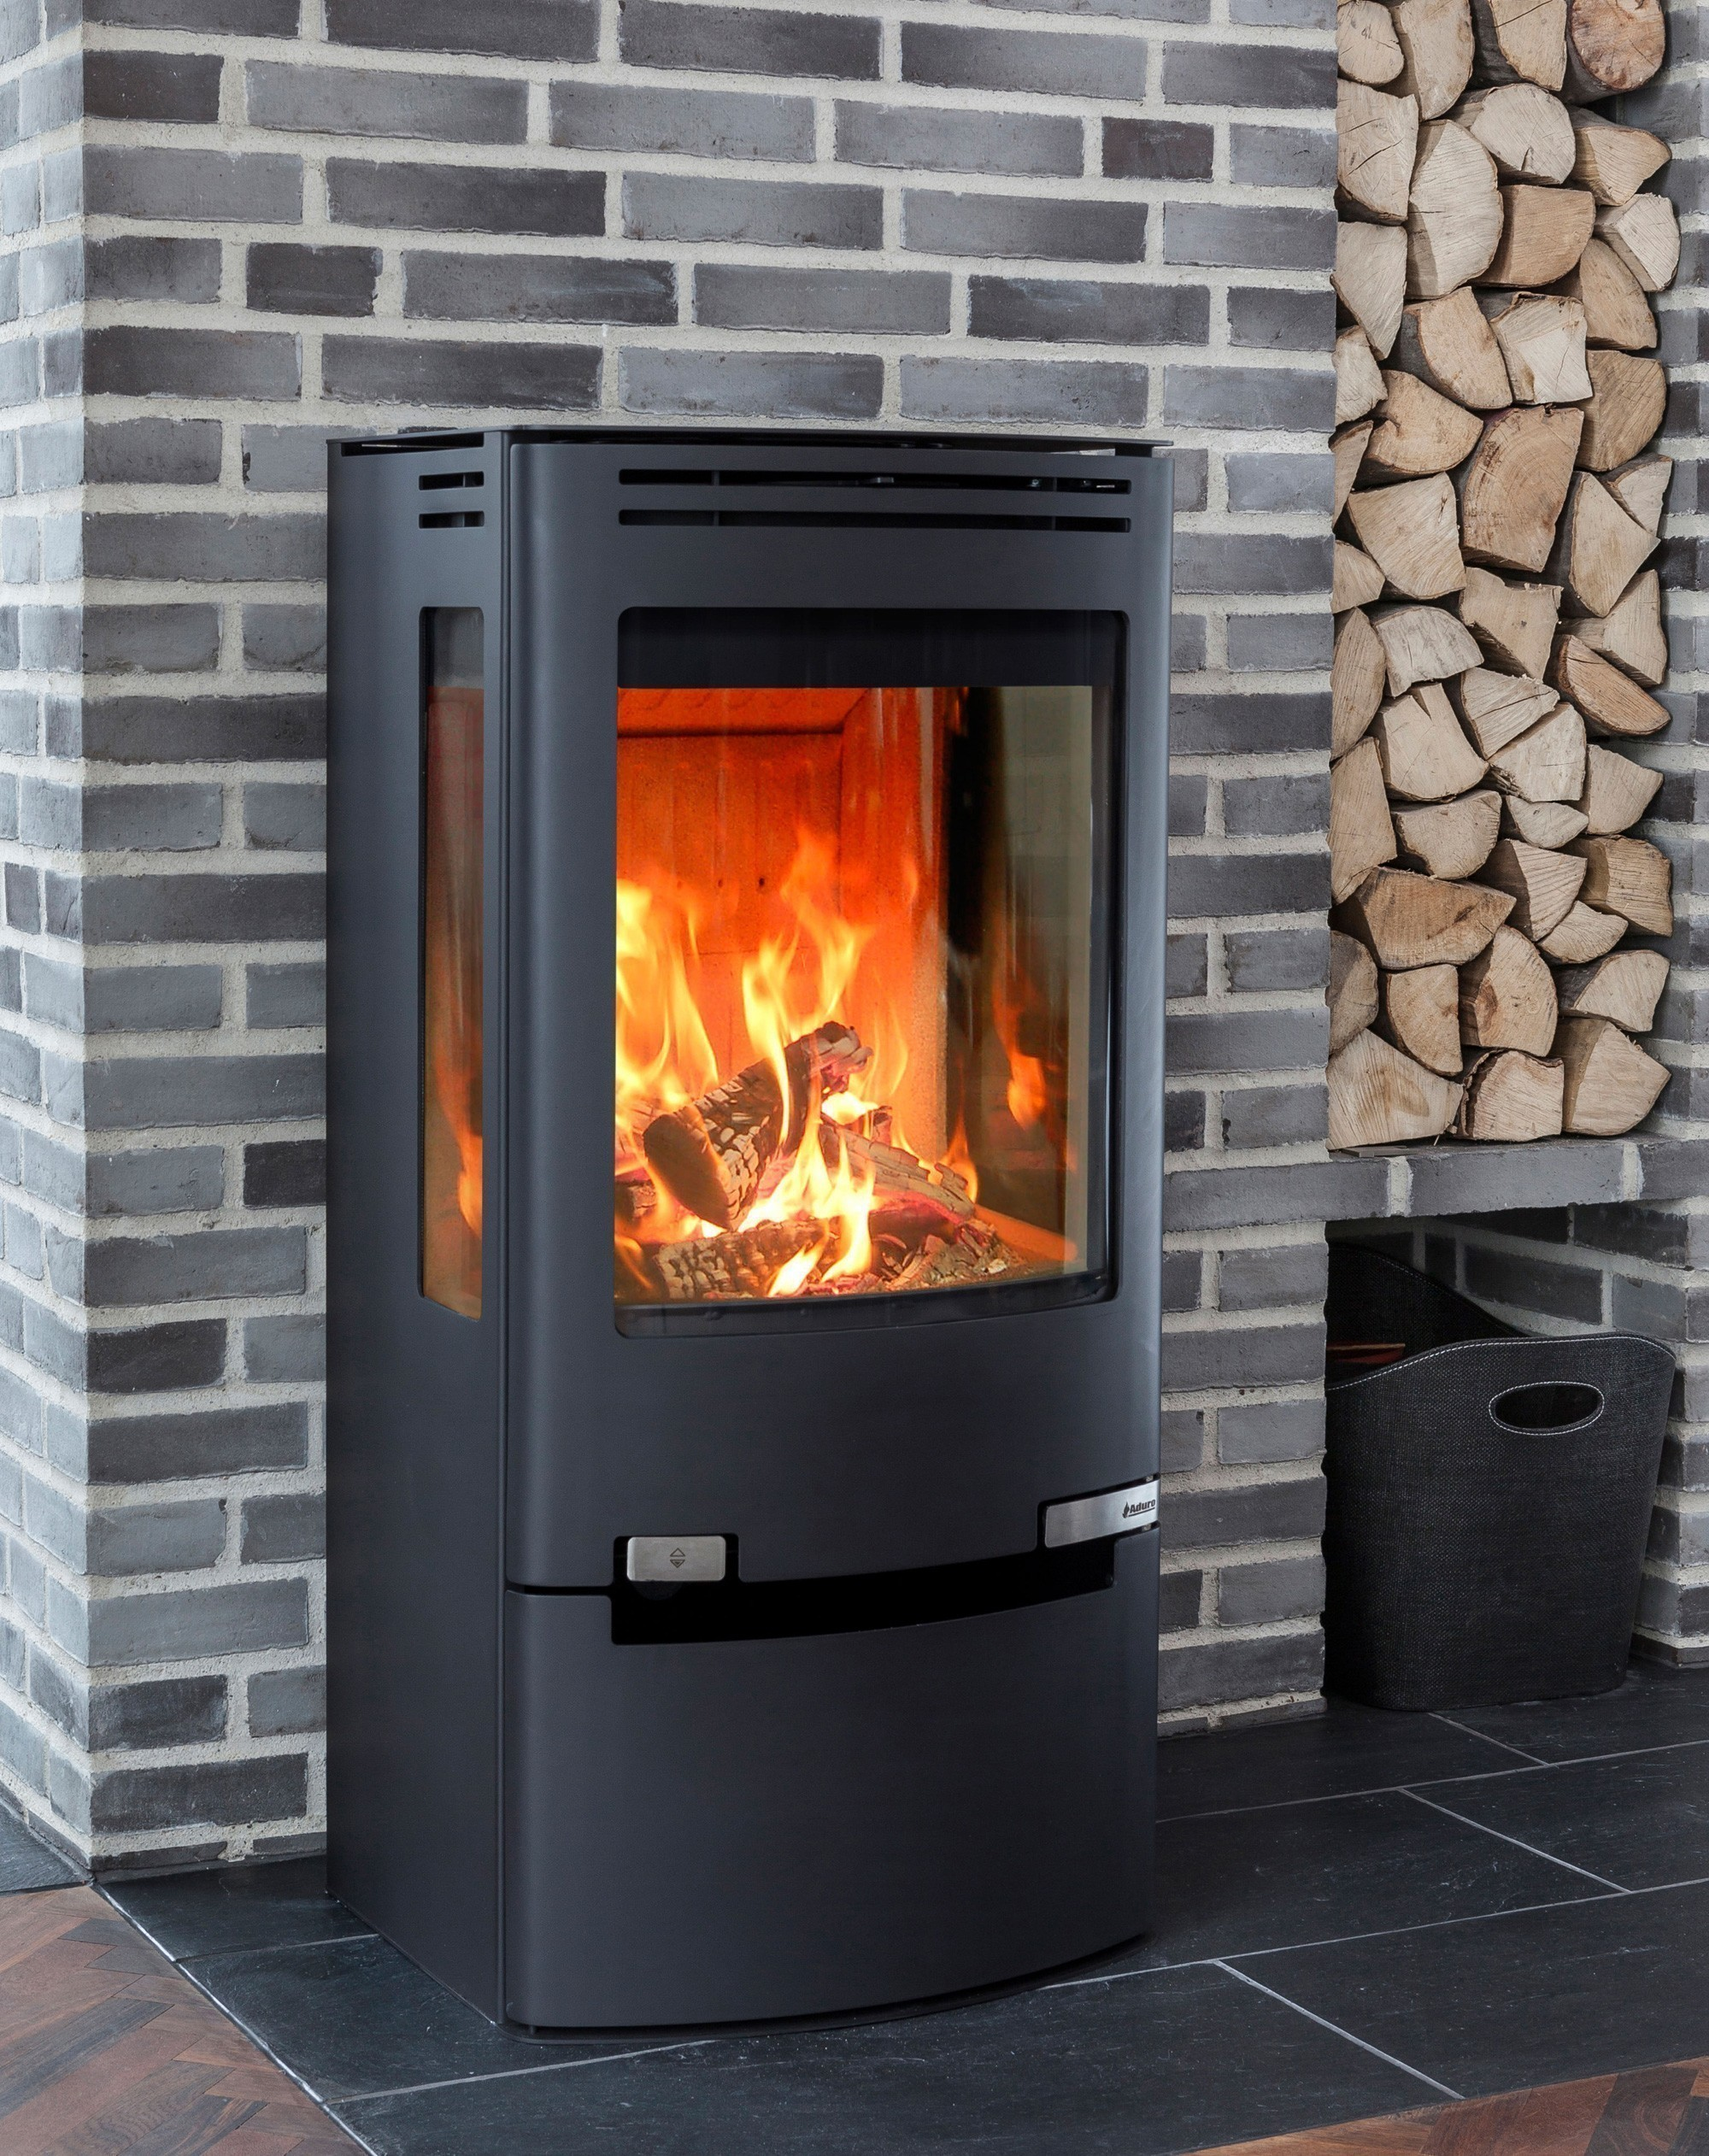 Kaminofen Hark Opera-b Grande Keramik Creme 7 Kw 3 Kw Ofen Fabulous Kfpsfwrz With 3 Kw Ofen Affordable Great